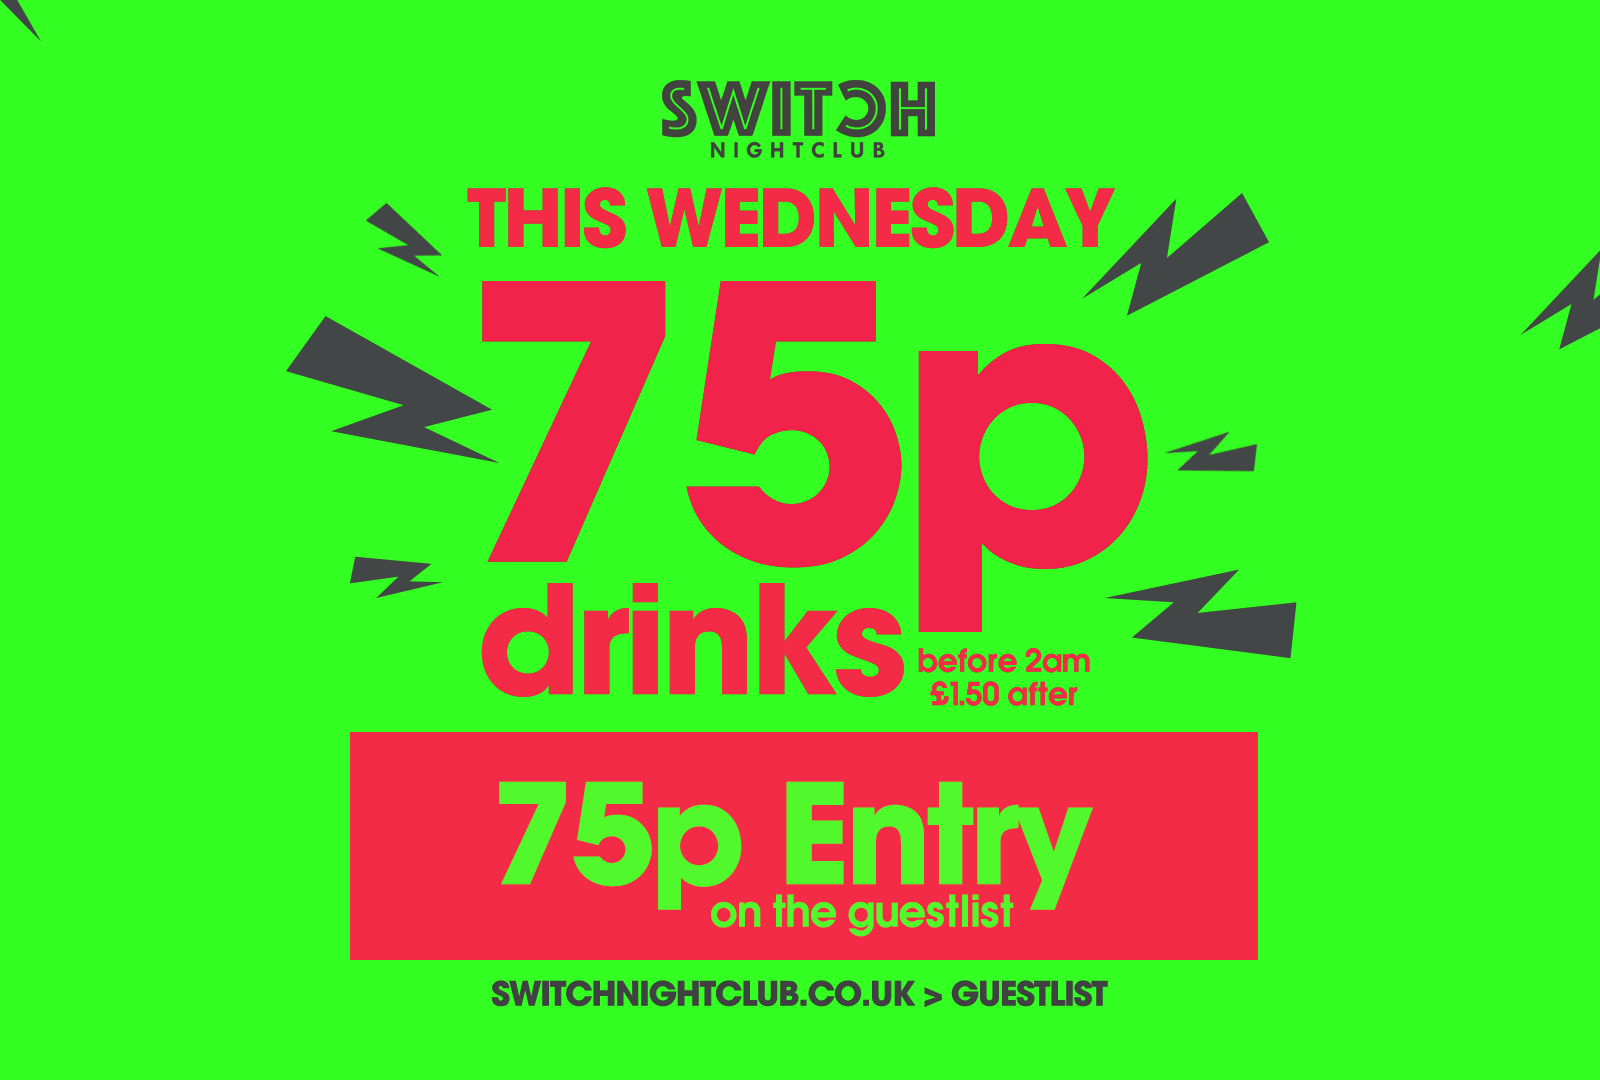 Juicy Wednesday's 75p Entry + Drinks